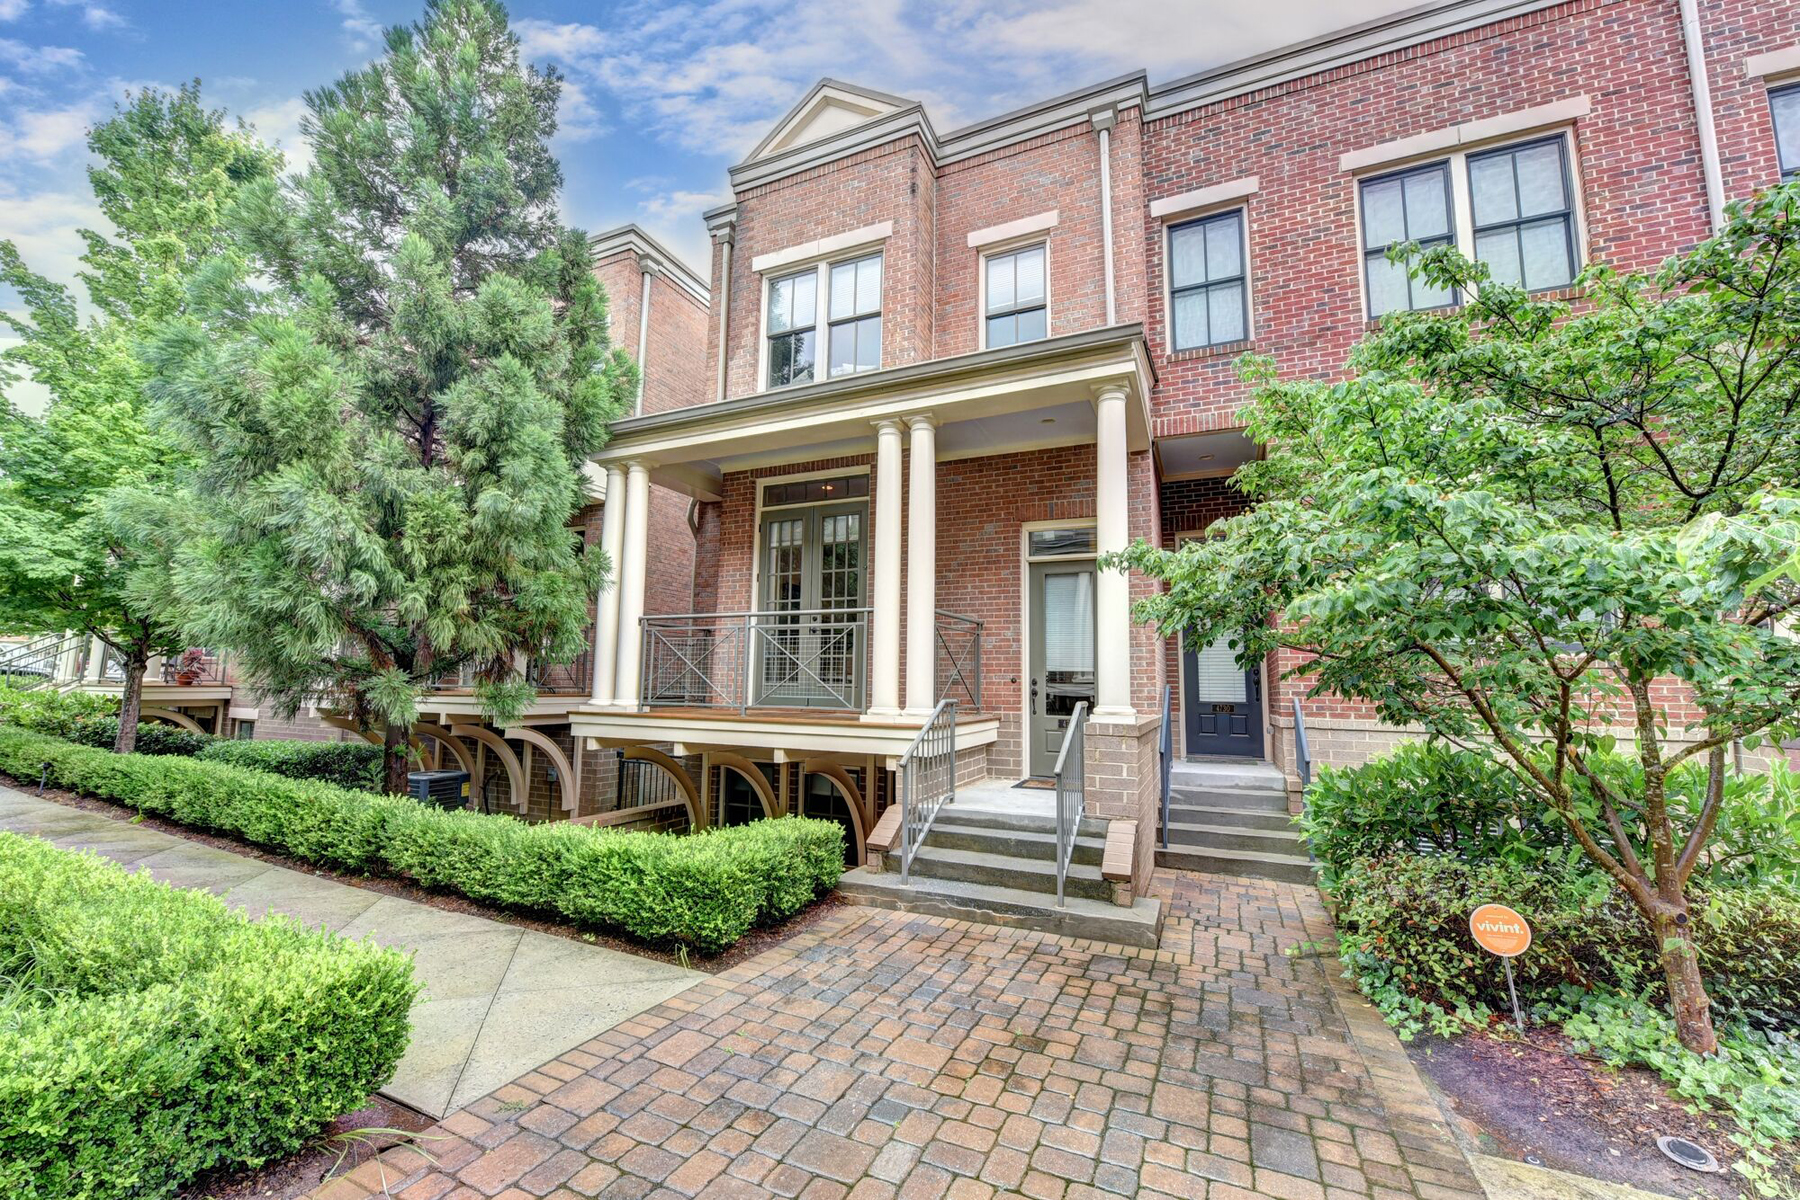 Herenhuis voor Huren een t Gated Executive Three Bedroom, Three And A Half Bath Townhome In Best Location 4732 Cypress Commons Dunwoody, Georgië 30338 Verenigde Staten